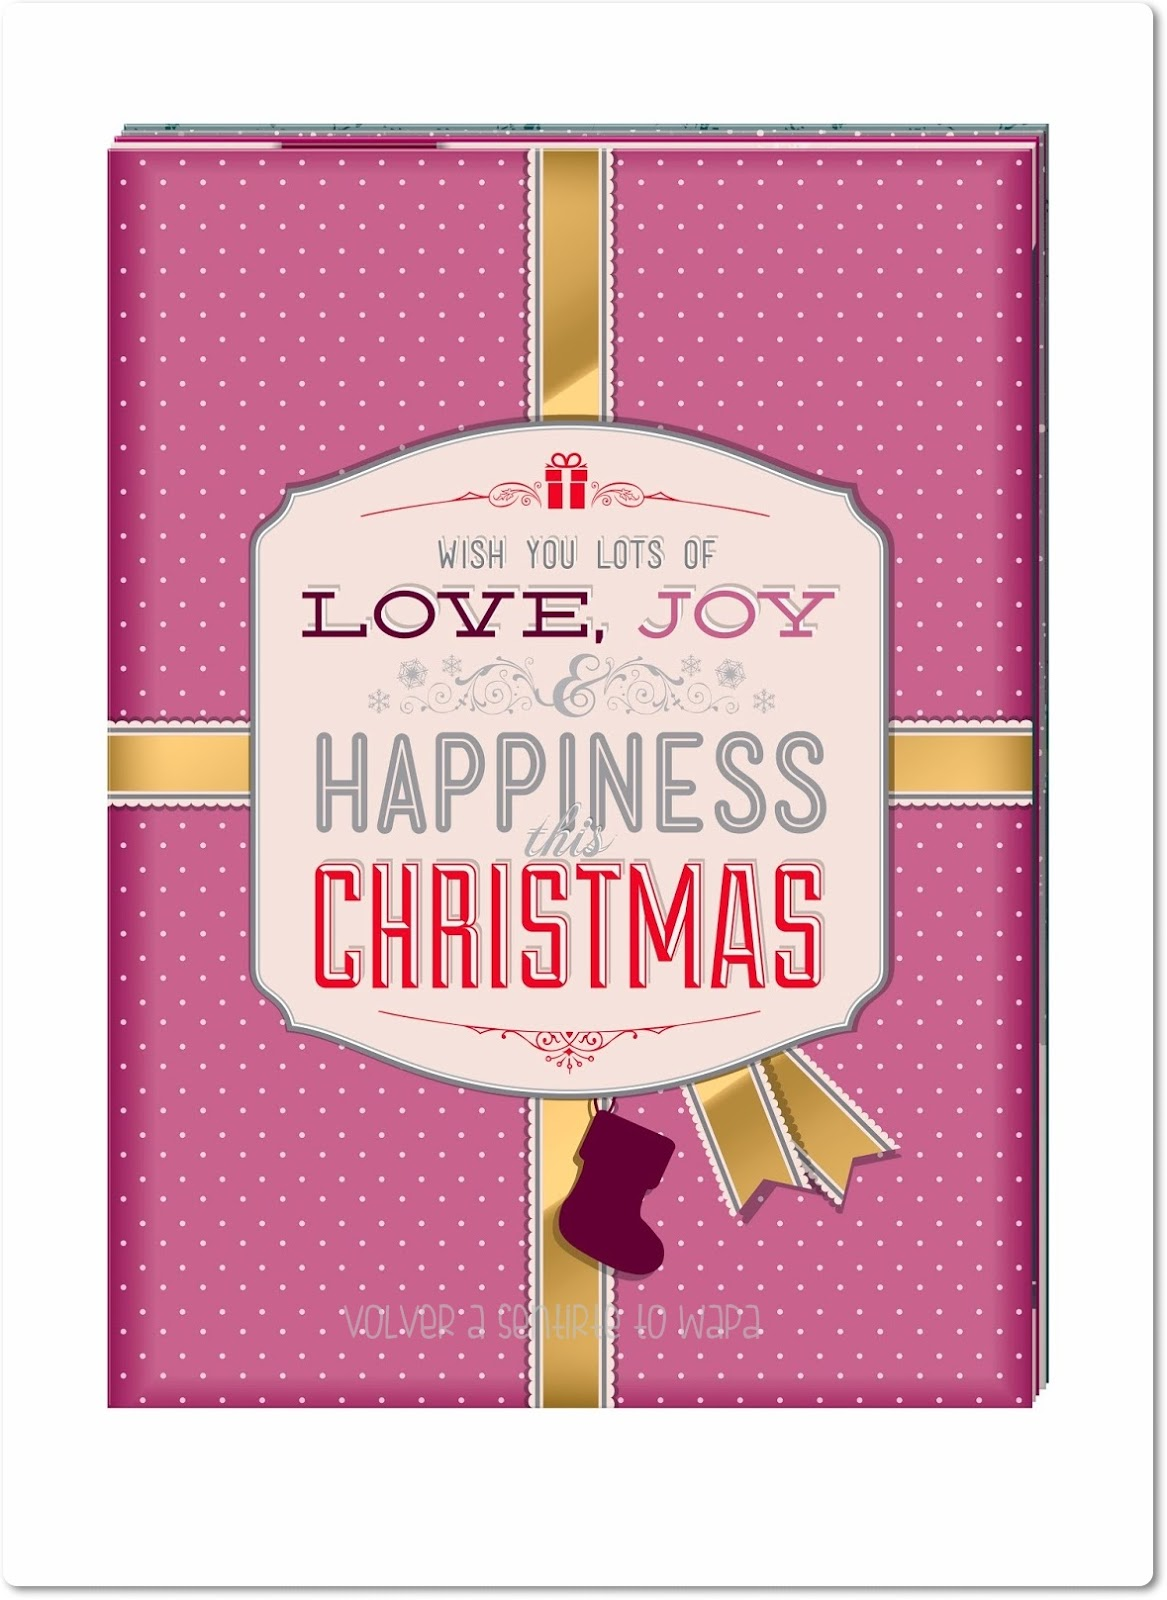 ESSENCE - Come to Twon {Noviembre 2014} - Greeting Cards